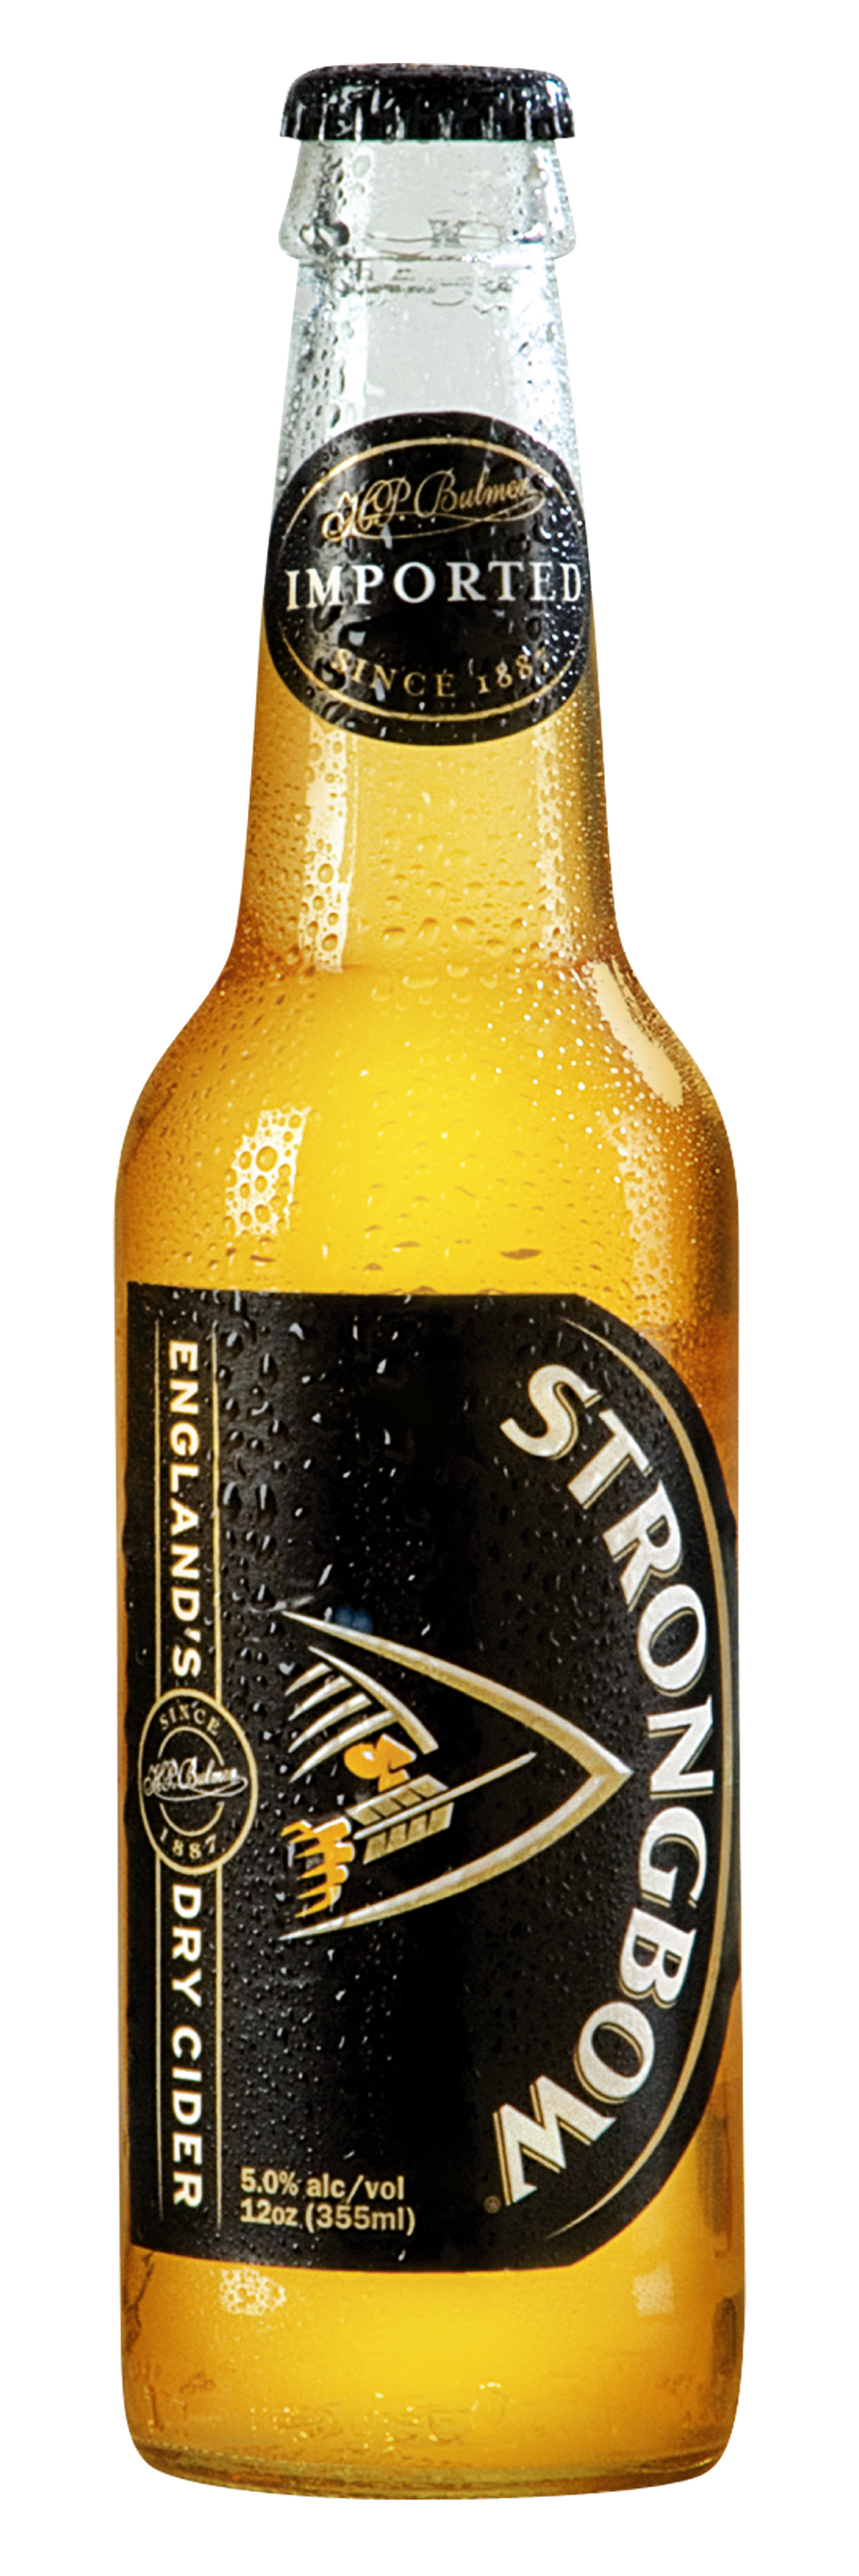 strongbow 900 2700 beers i 39 ve tasted around. Black Bedroom Furniture Sets. Home Design Ideas